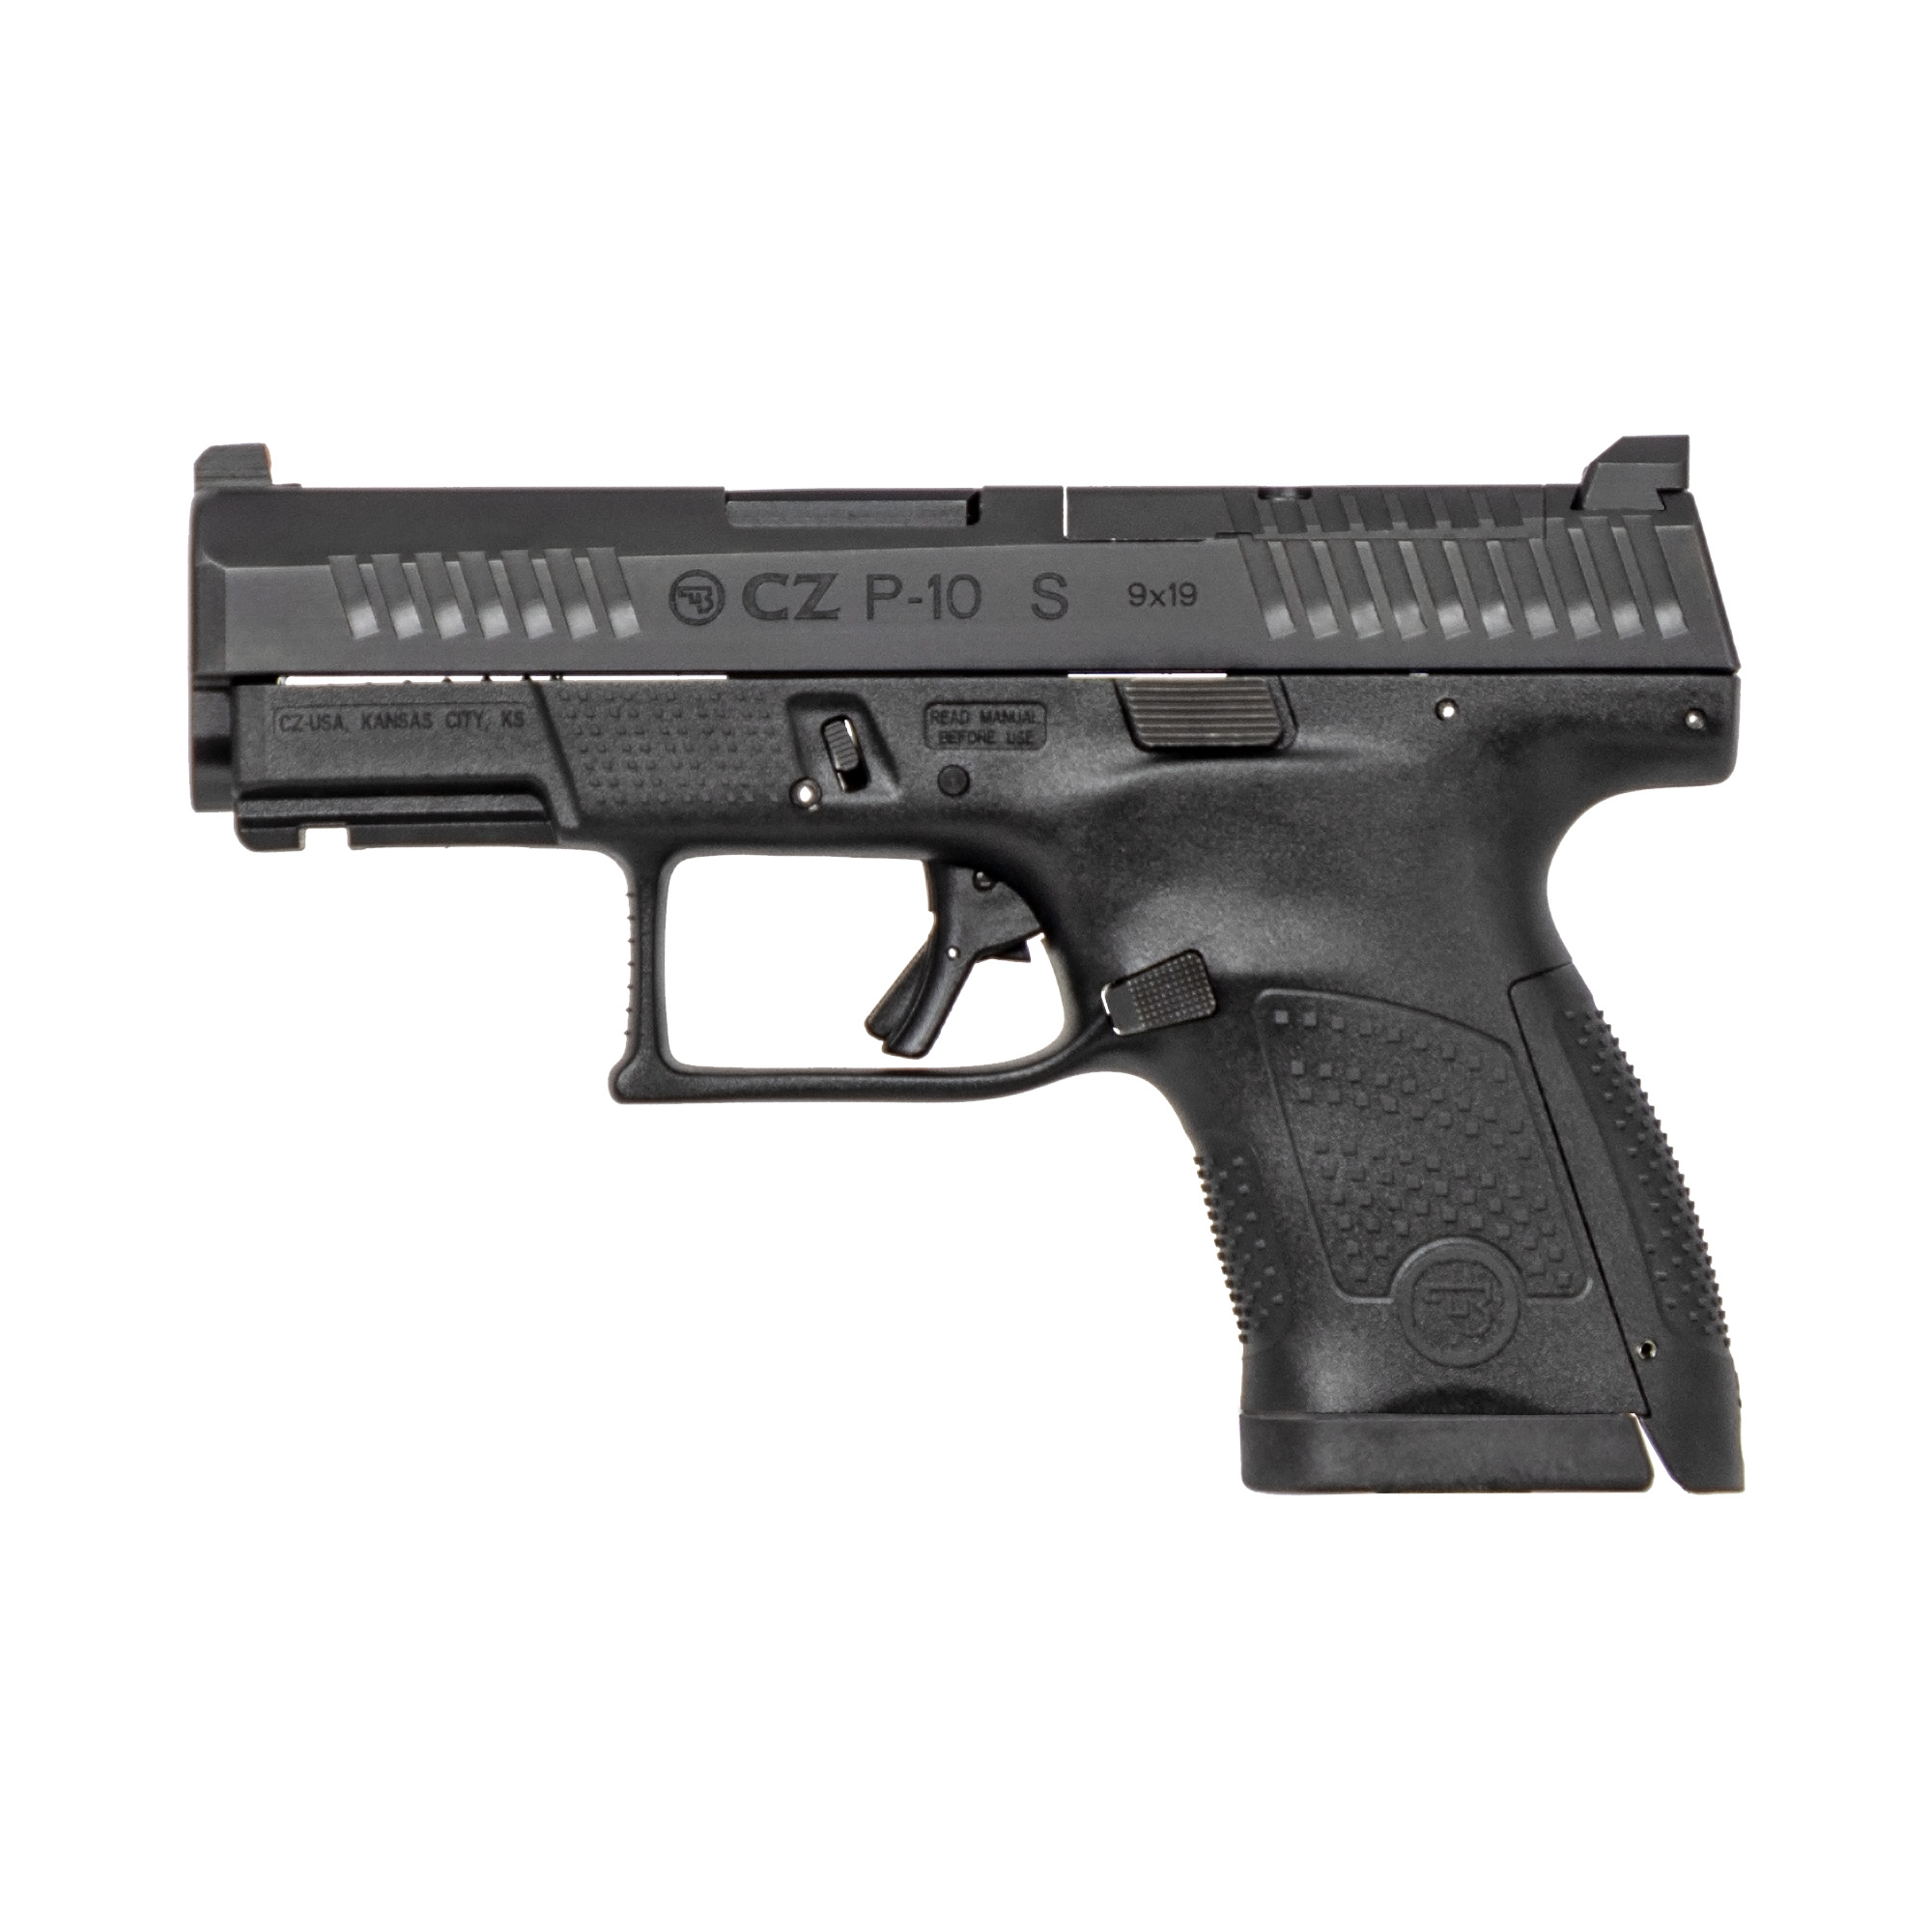 """With CZ reliability"""" engineered ergonomics and a bevy of features both familiar and new"""" the P-10S is the complete package. The CZ grip angle"""" helps the P-10S avoids that 'brick-in-the-hand' feeling that has plagued many in the striker-fired genre"""" allowing it to point naturally. A mild palm swell"""" deep beavertail and three interchangeable backstraps make the P-10S fit a wide variety of hands. The P-10S's trigger is designed to minimize creep and stacking"""" and after initial break-in averages a clean 4.5-5 lb. pull and rebounds with a short"""" positive reset - meaning single shots can be meticulously placed while follow-ups are effortless. Built to withstand the rigors of military use"""" its fiber-reinforced polymer frame and hardy nitride finish are made for the daily grind. A generous trigger guard allows use with gloved hands while being undercut to allow as high a grip as possible"""" and a set of metal tactical sights allow for one-handed manipulation of the slide on a belt. Like all CZ pistols"""" the P-10S is built with CZ's legendary cold hammer forged barrel. This model has a 12RD capacity."""